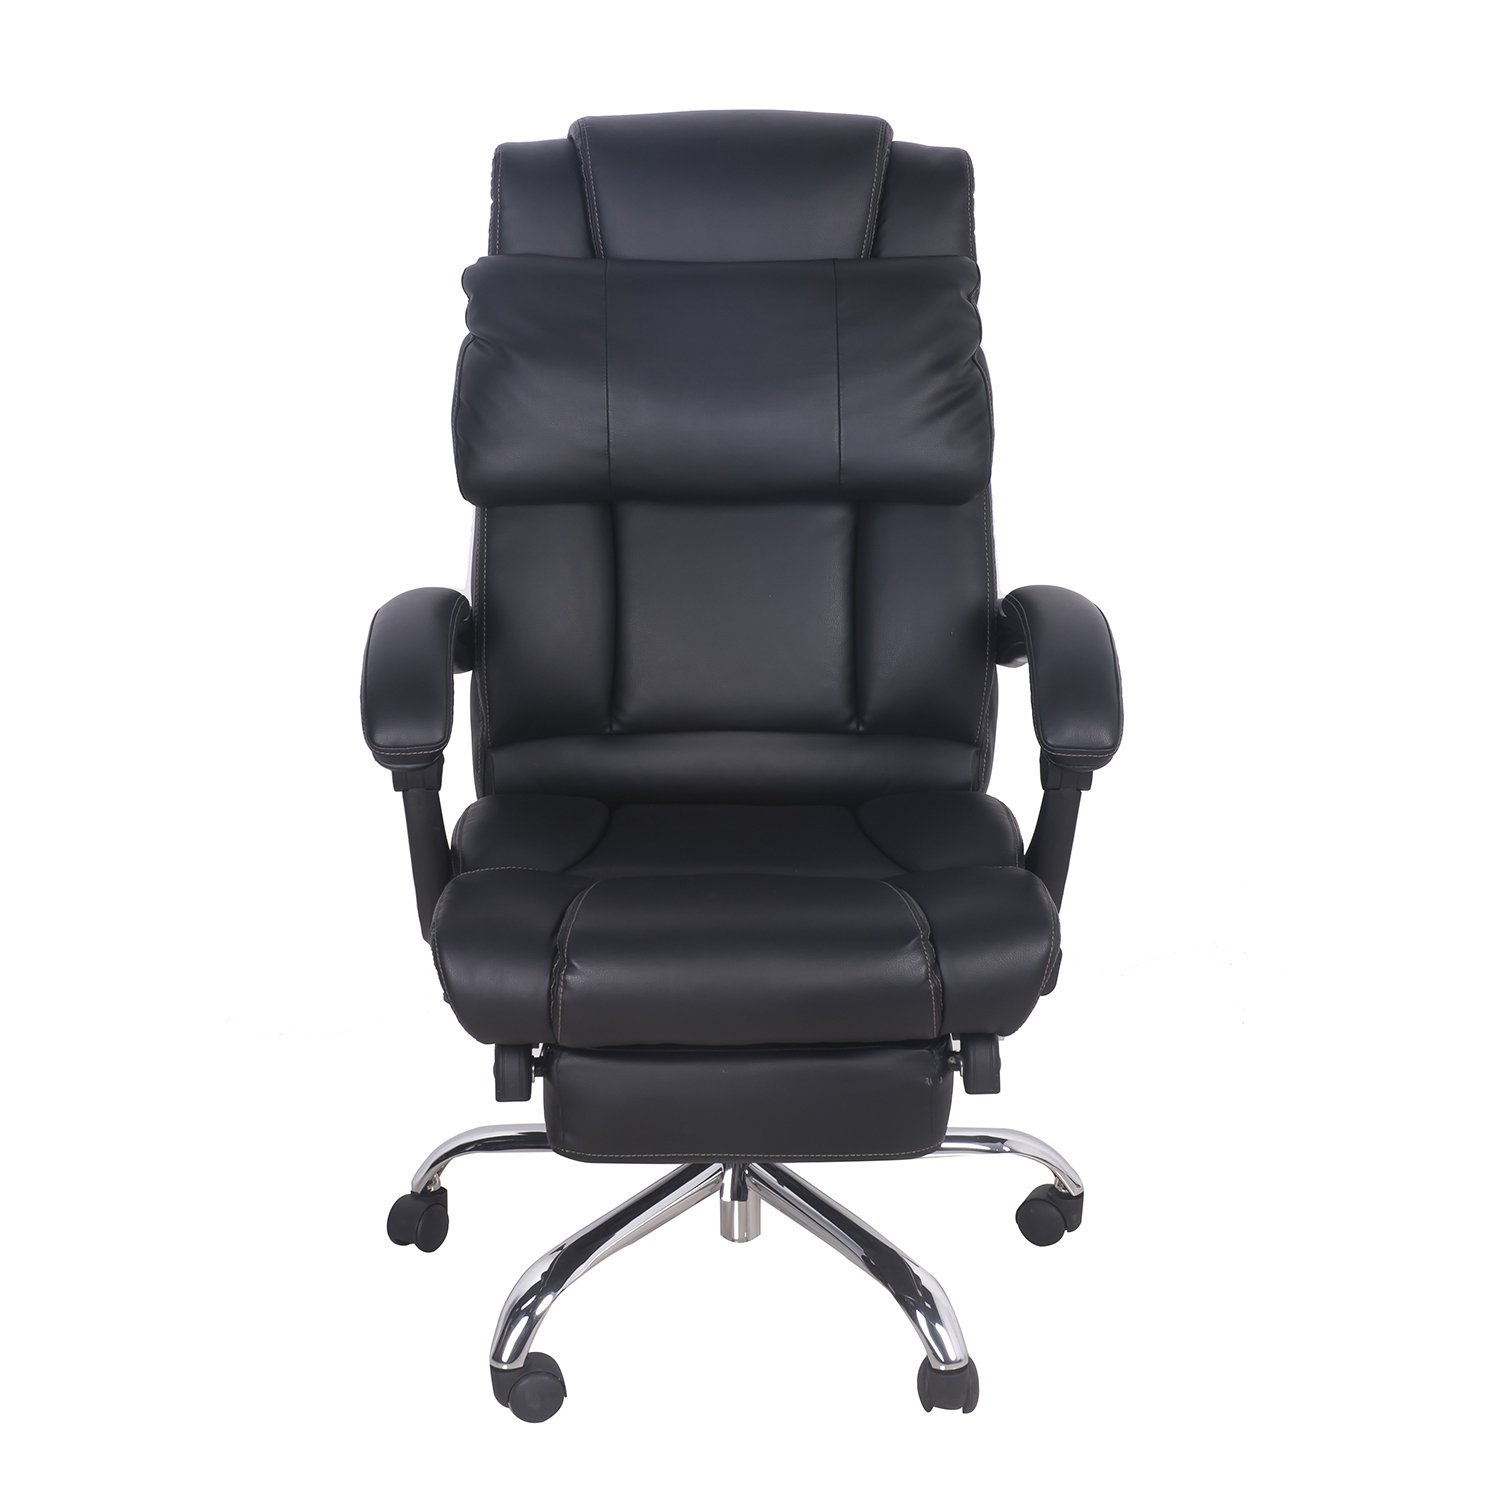 office recliner chairs. Merax Technical Leather Big Tall Executive Recliner Napping - Black Office Chairs E